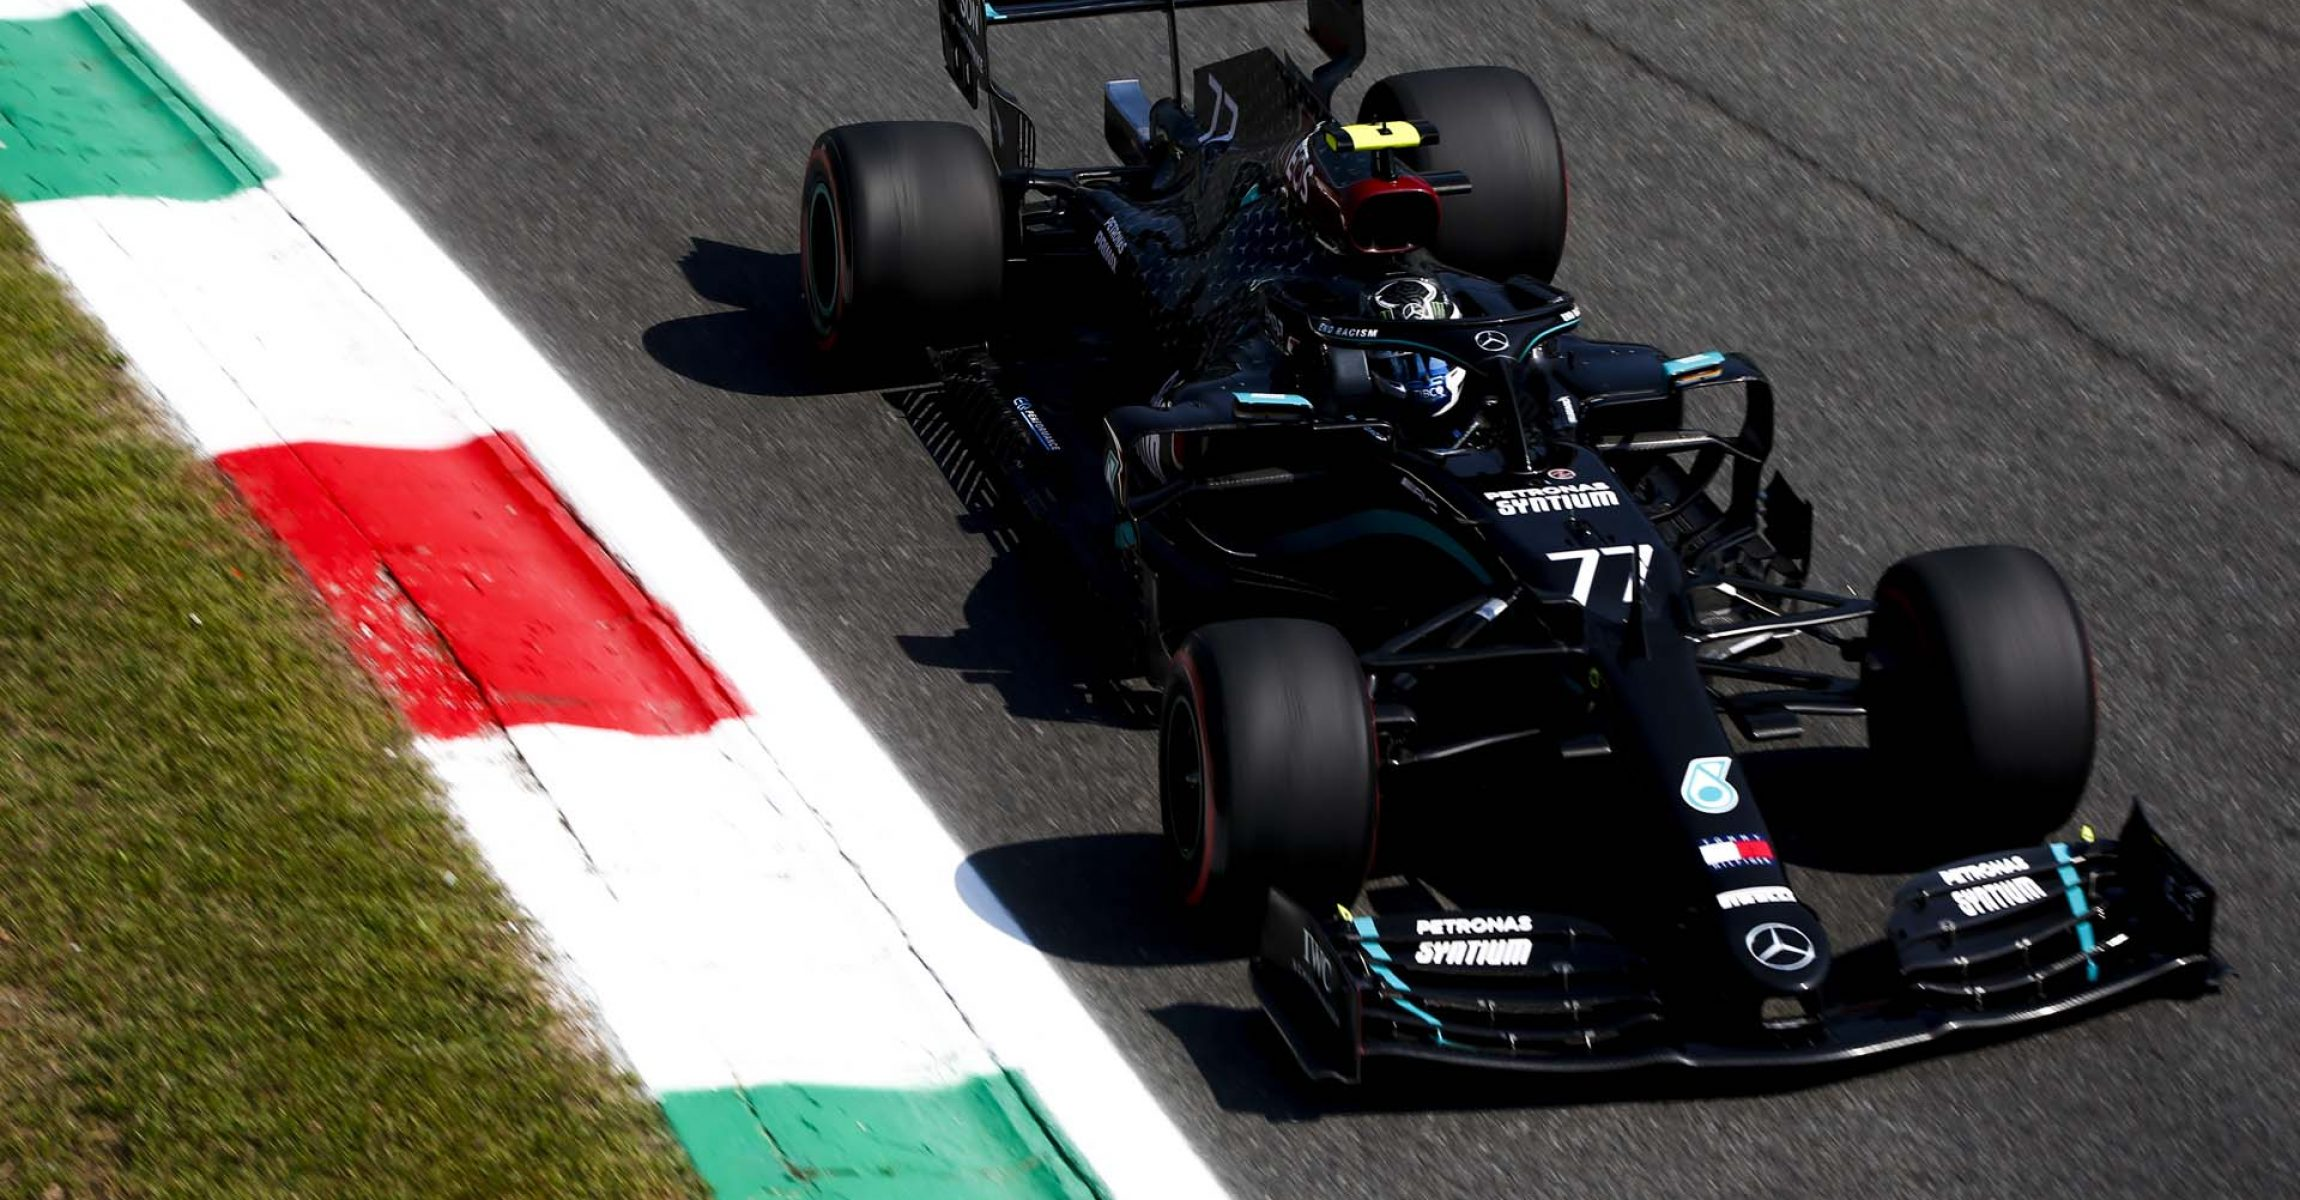 2020 Italian Grand Prix, Friday - LAT Images Valtteri Bottas Mercedes